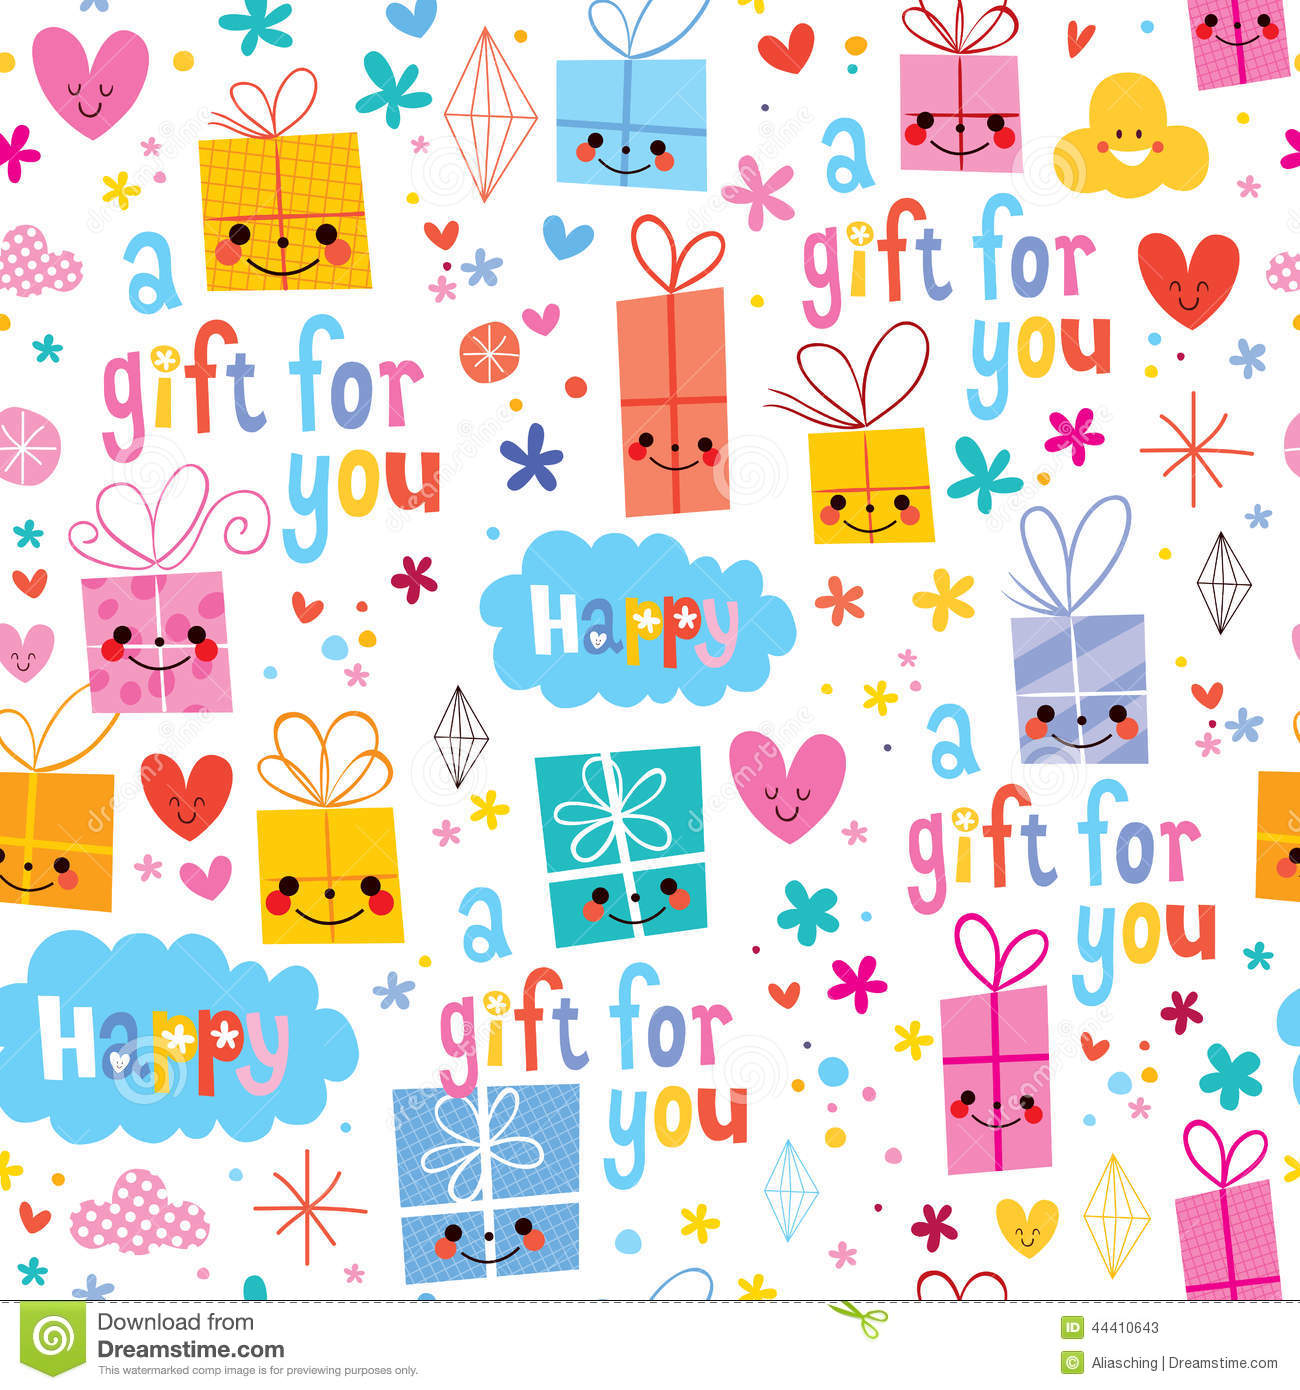 Gift wrap paper clipart clipground for How to wrap presents with wrapping paper